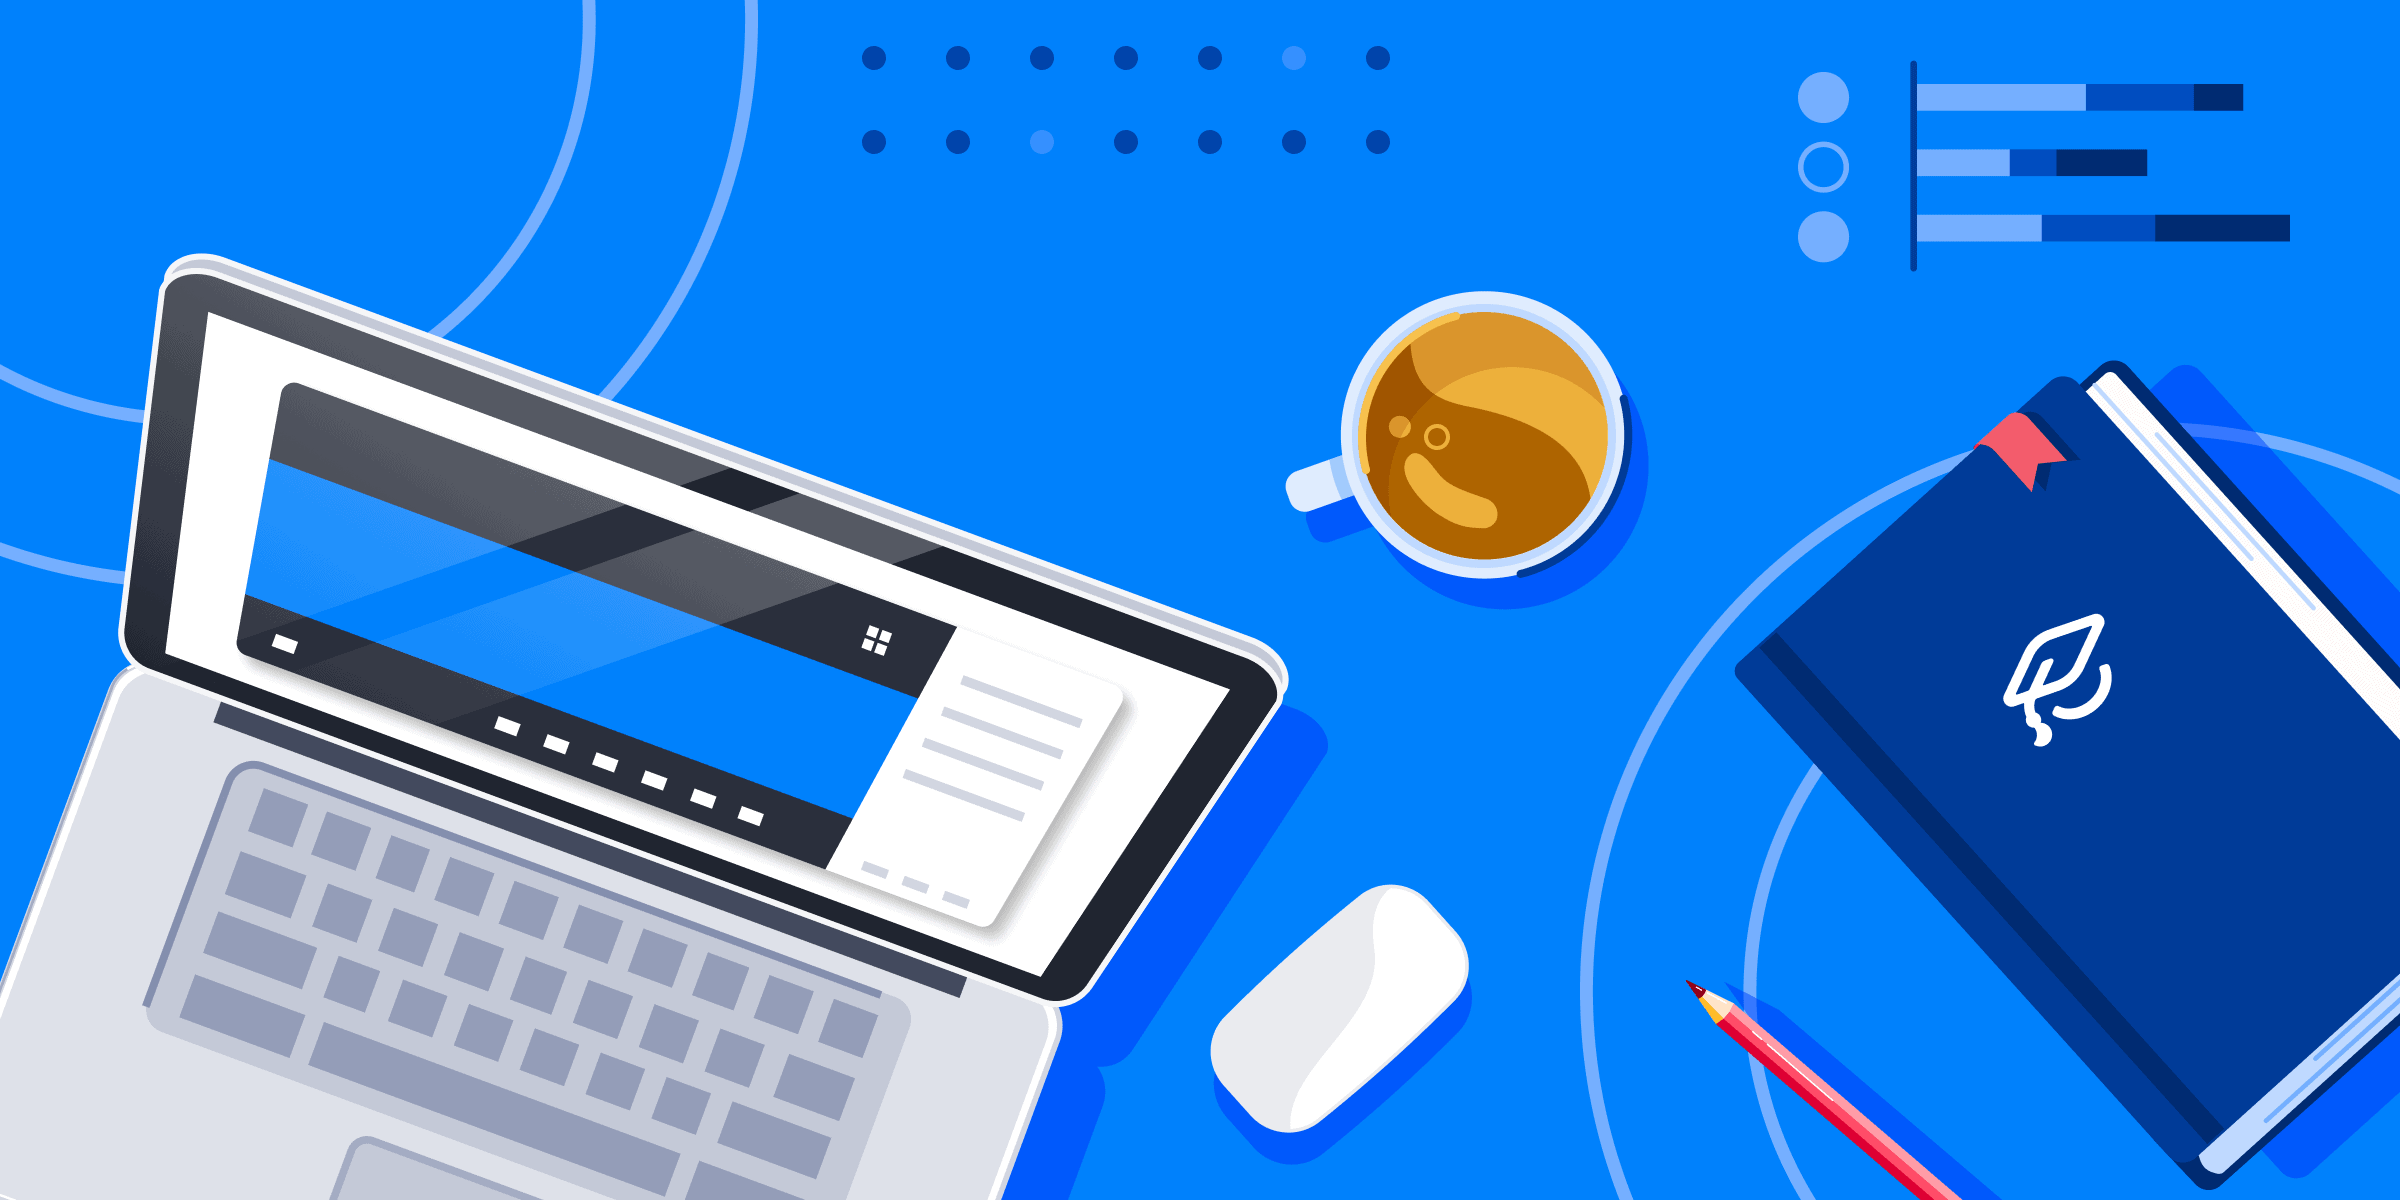 A laptop, a computer mouse, a daybook, a cup of coffee, and a pencil.